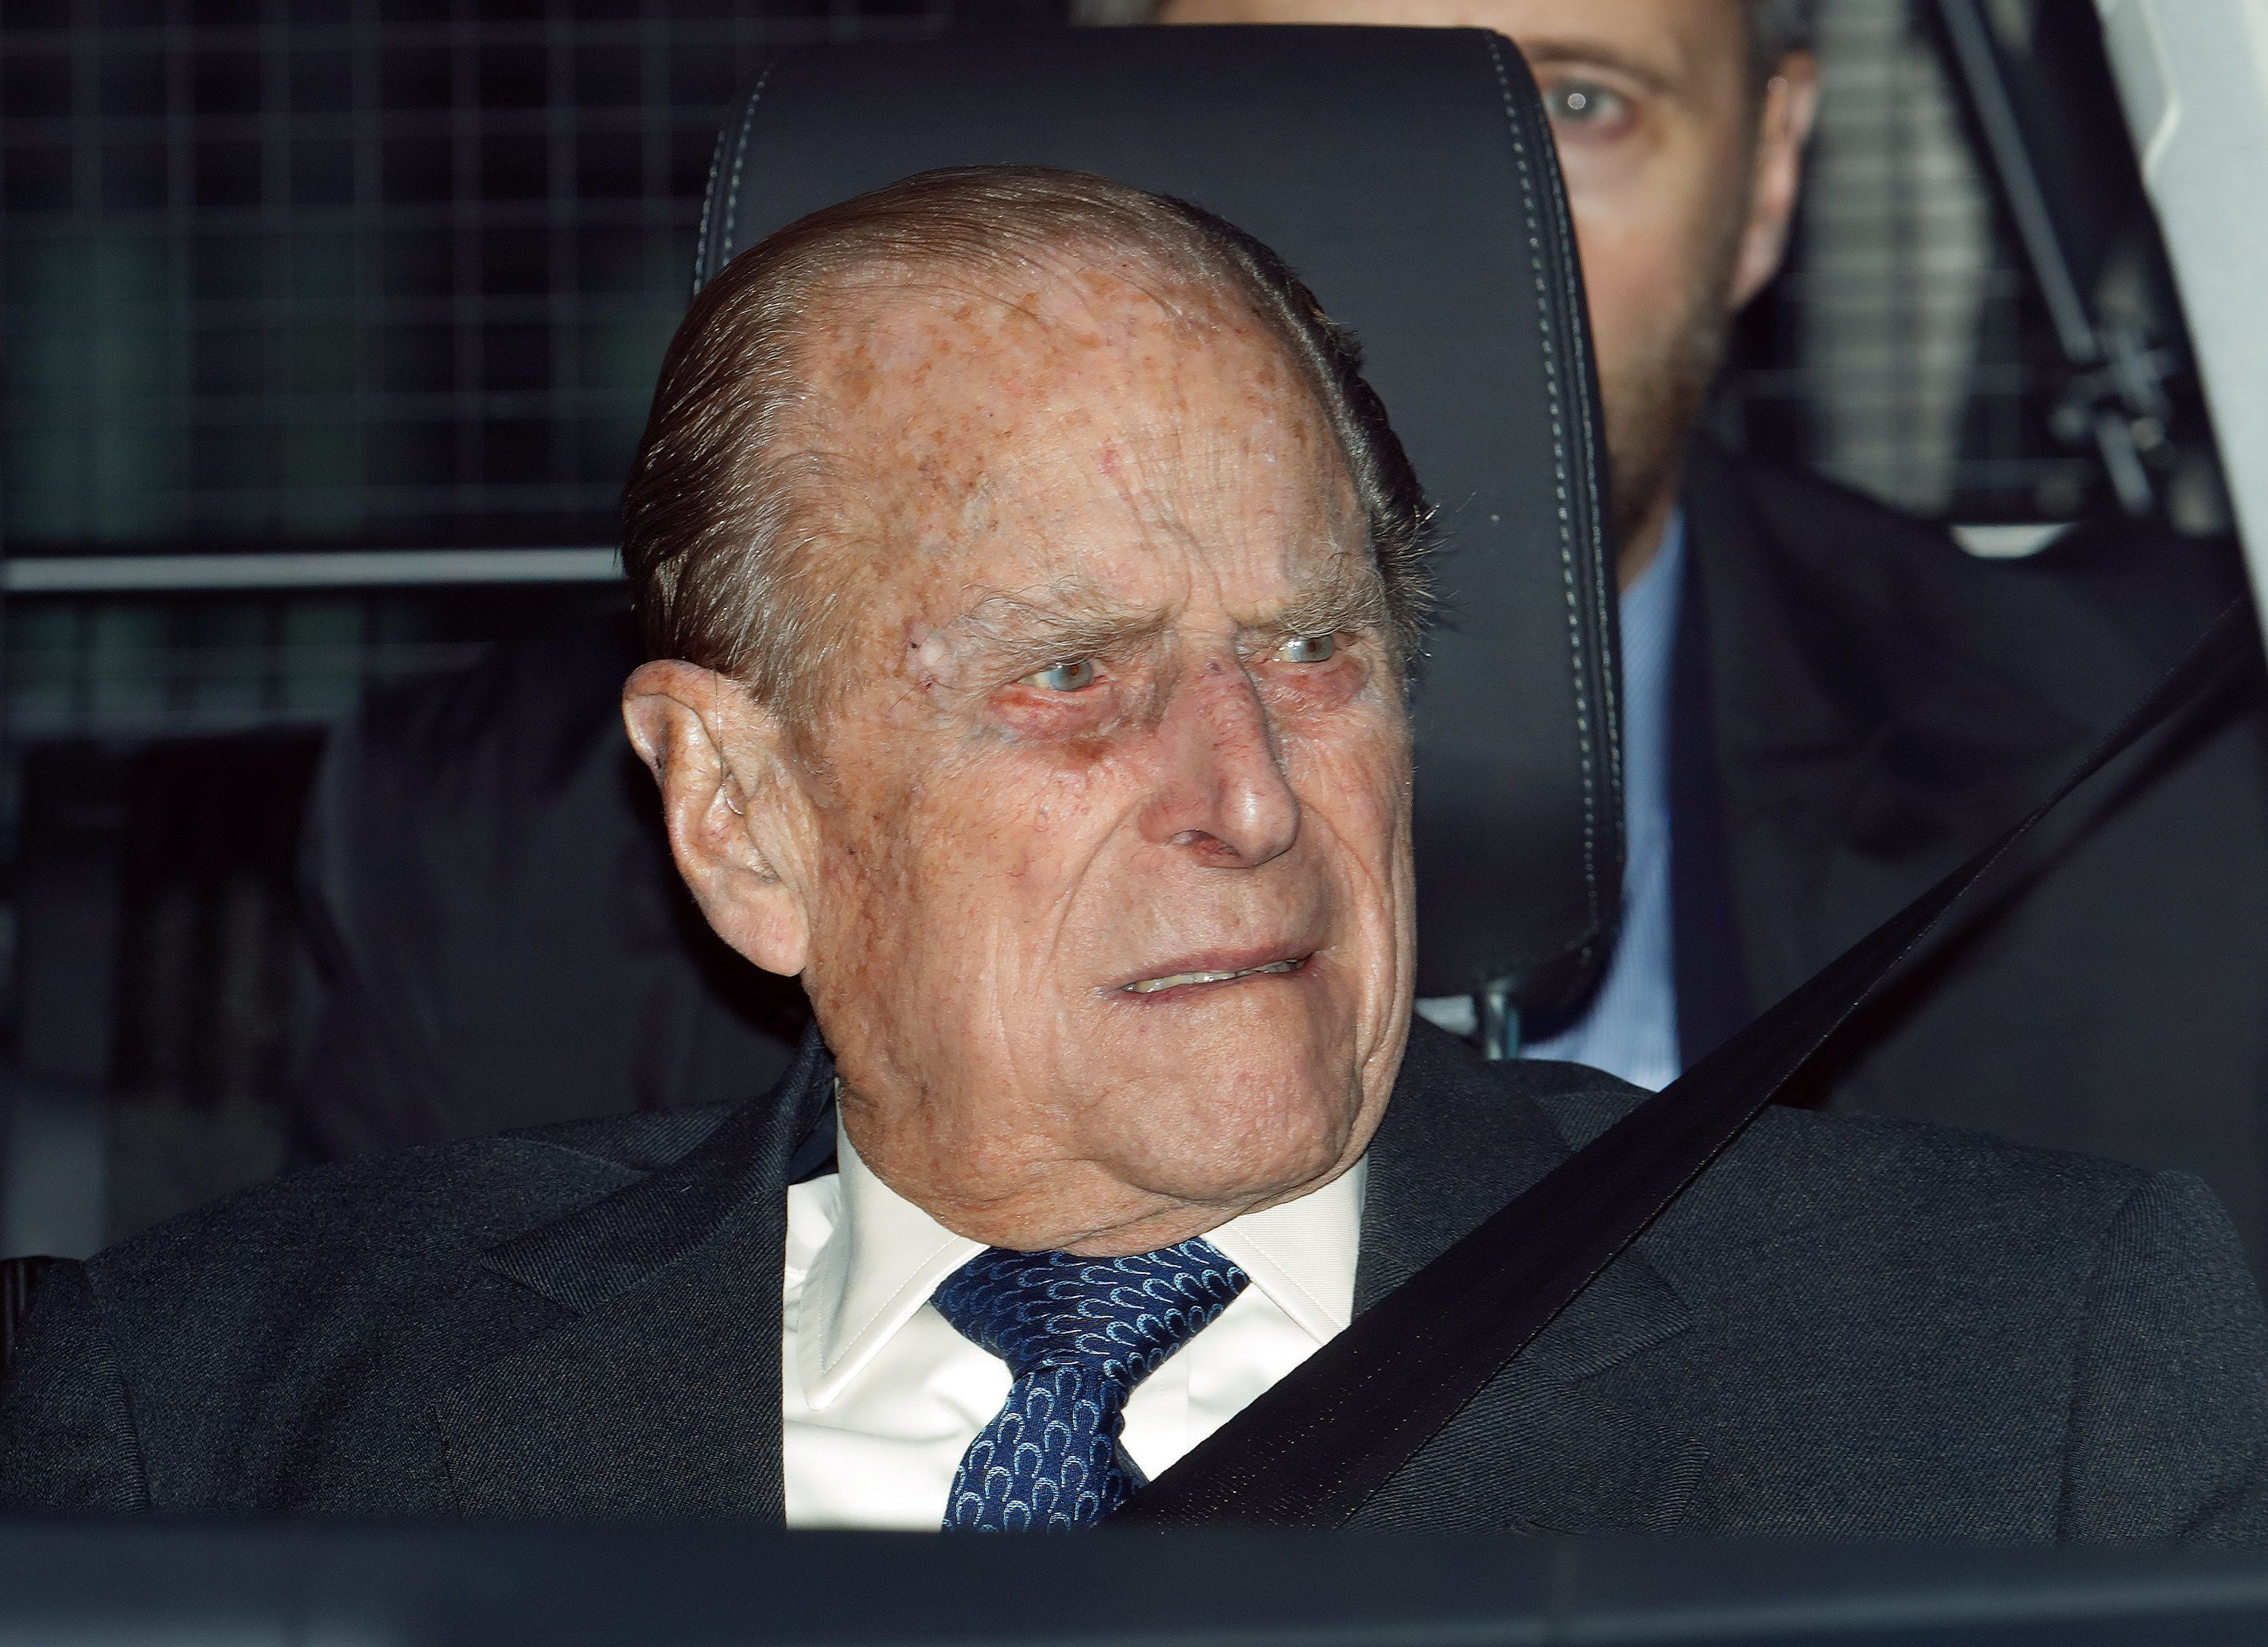 Prince Philip, 97, surrenders driver's license weeks after crash